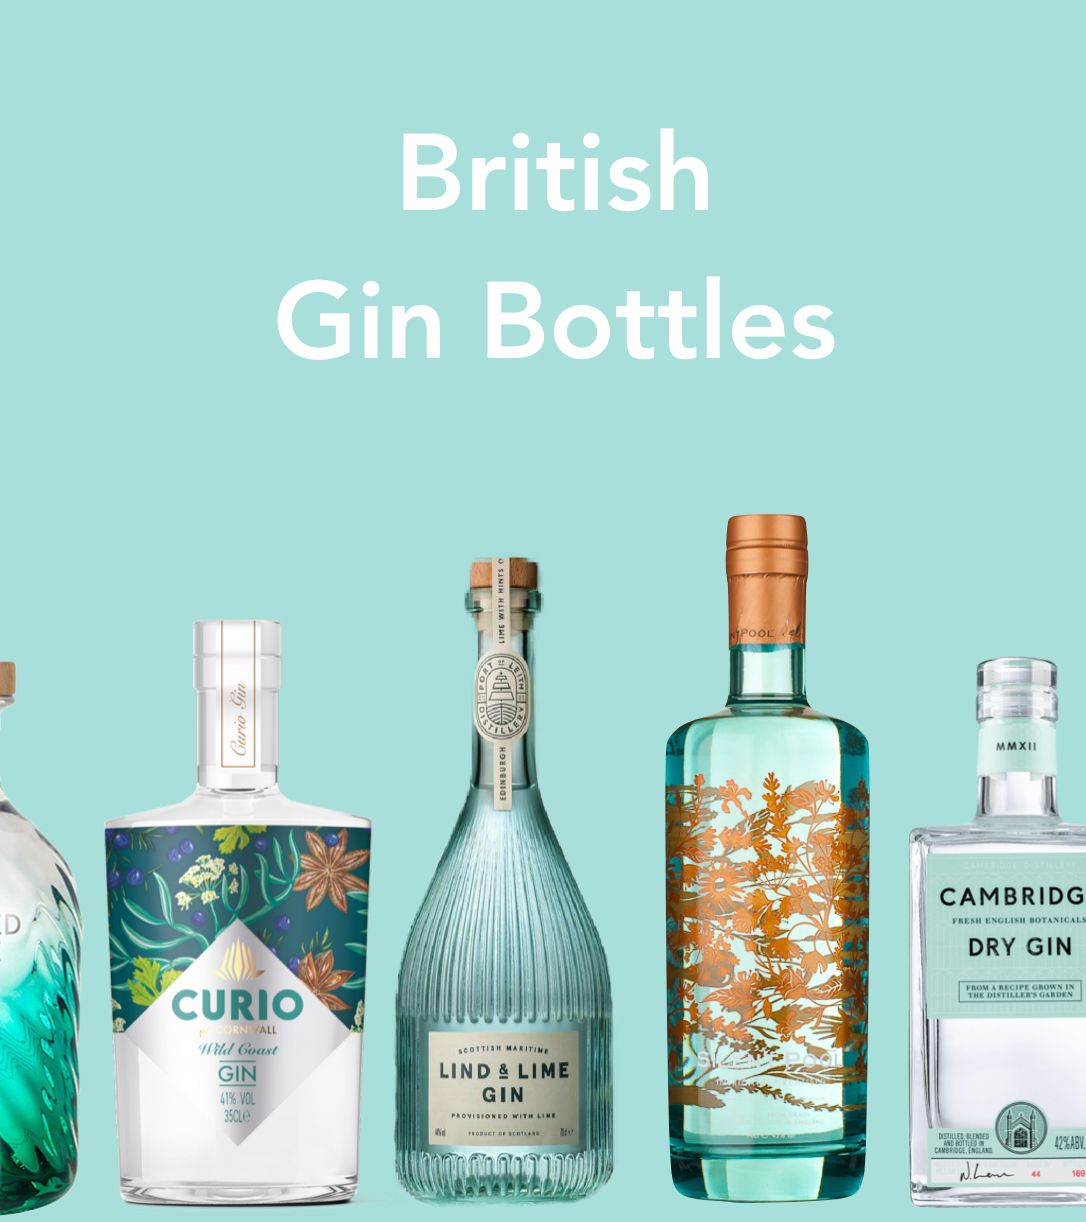 British Gin Bottles - More choice than ever for your festive G&T